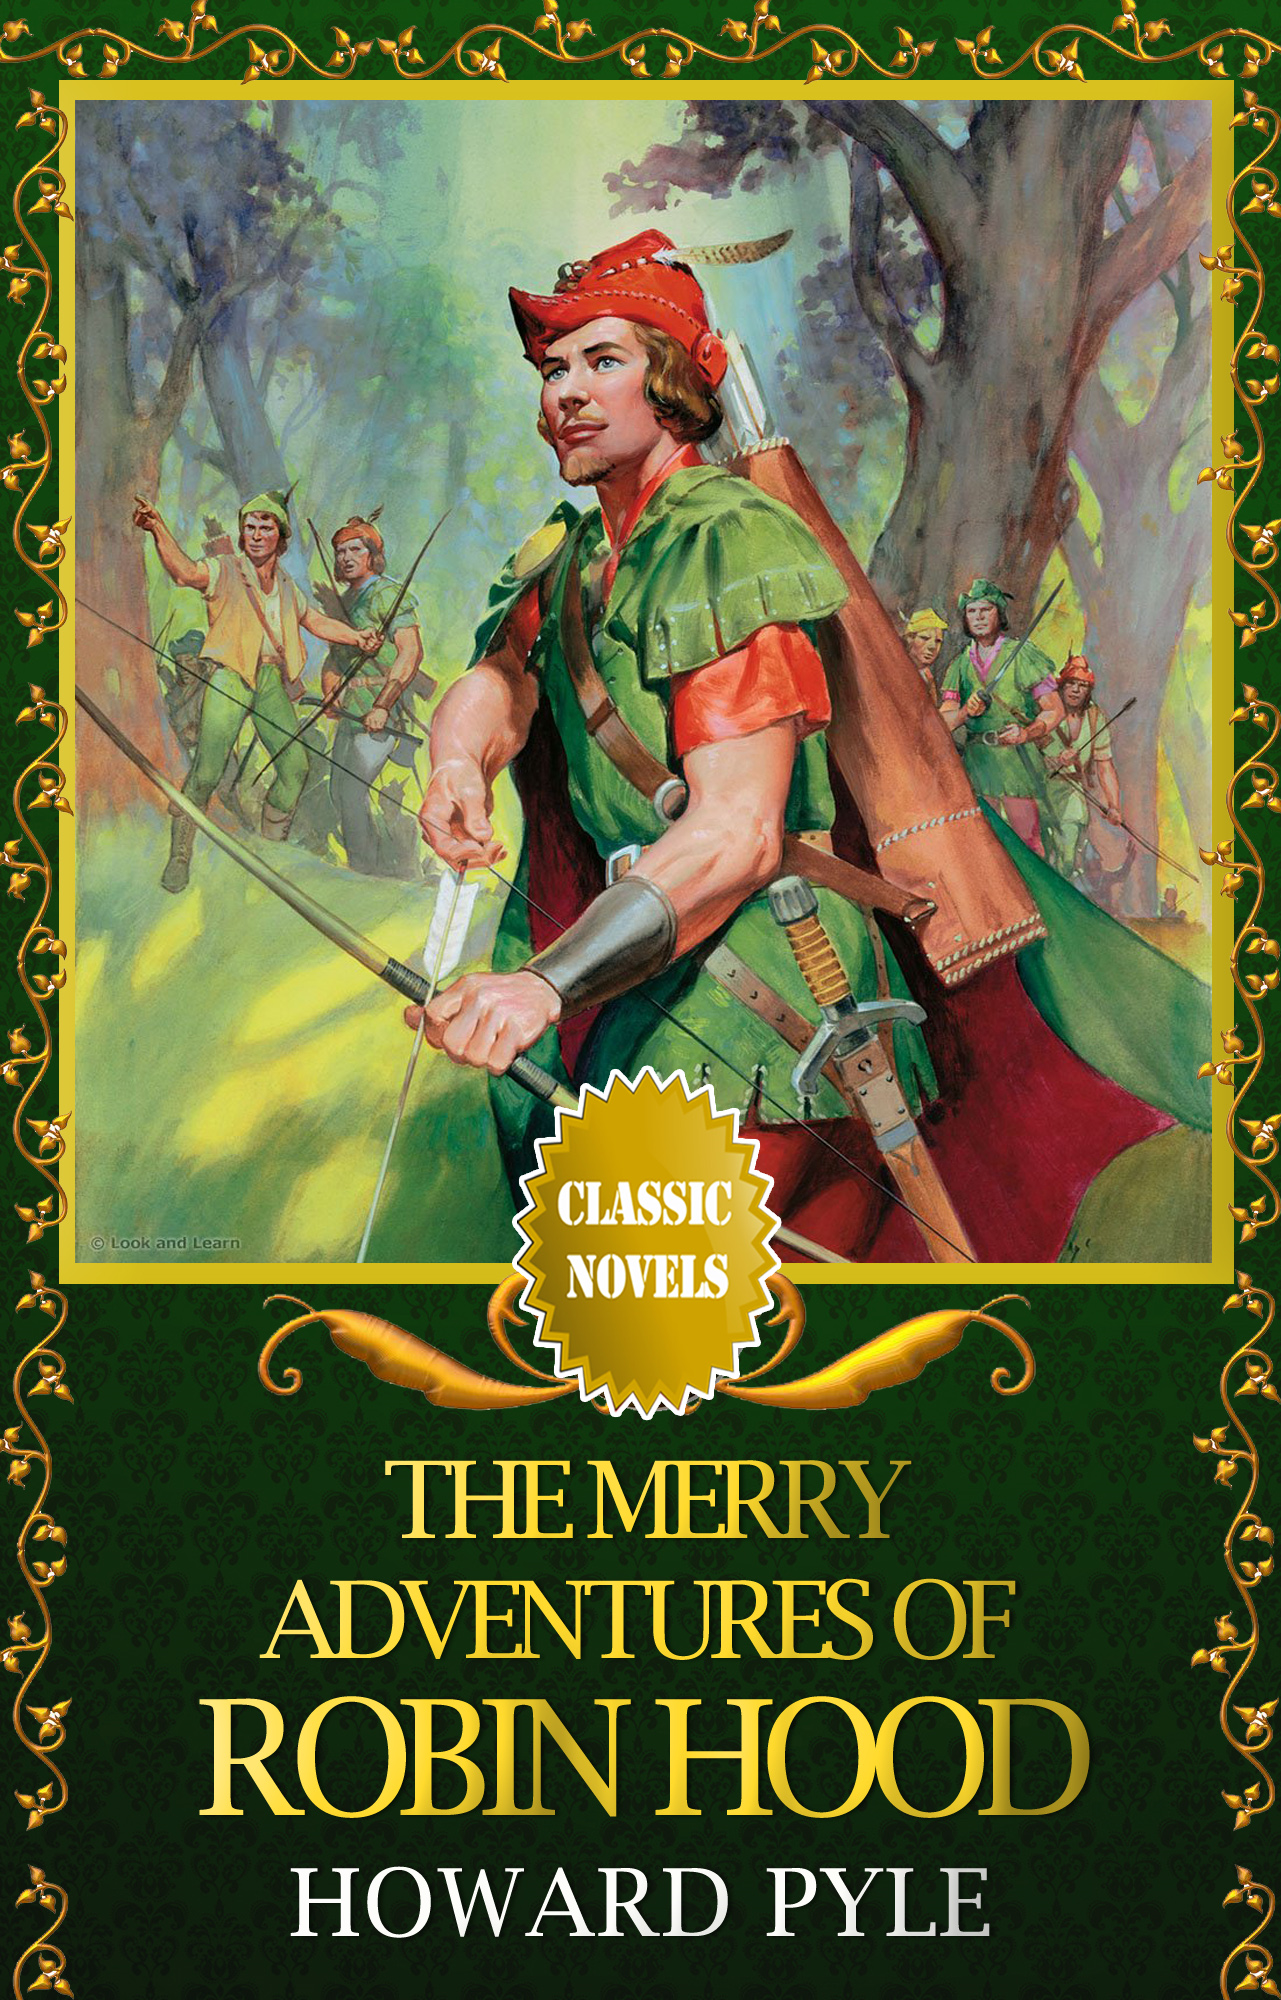 Howard Pyle - THE MERRY ADVENTURES OF ROBIN HOOD Classic Novels: New Illustrated